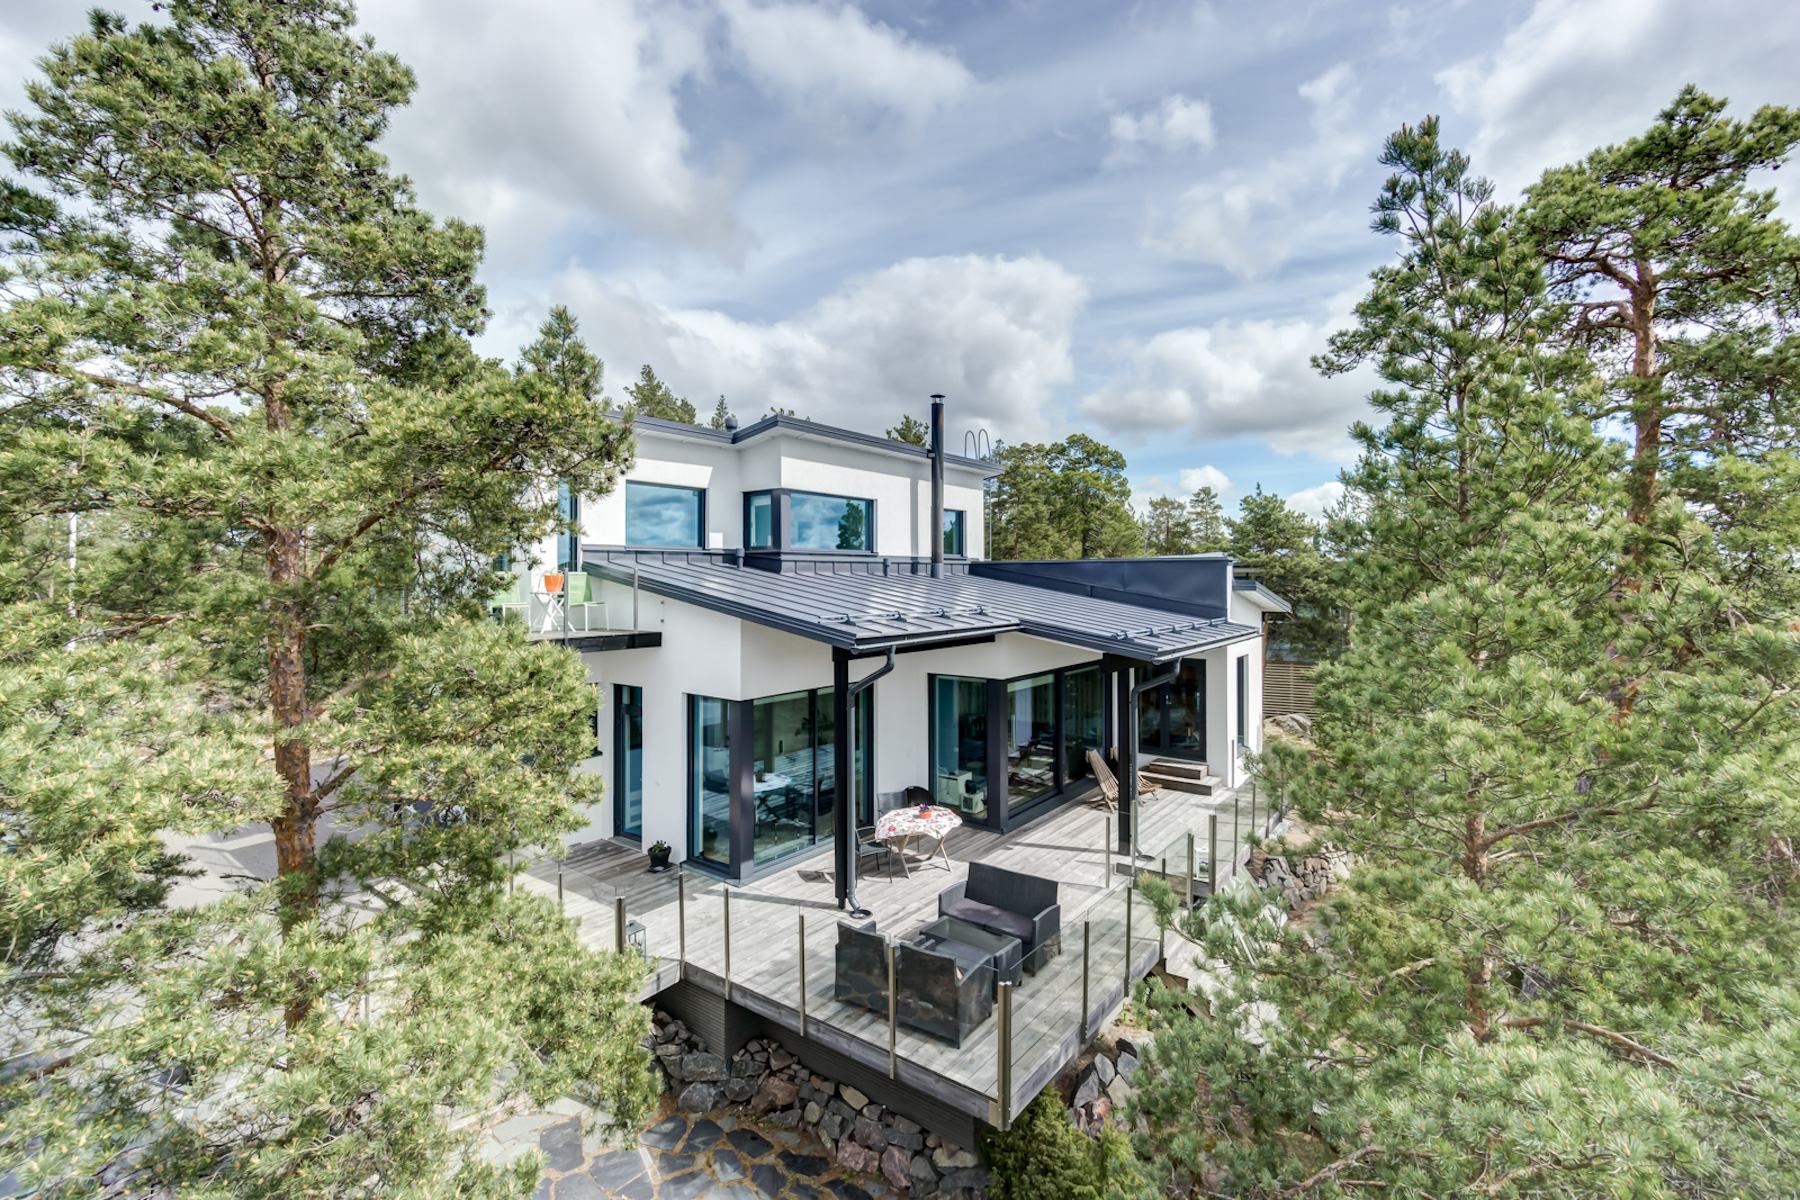 Moradia para Venda às Exquisite villa with panoramic sea view Virvenrinne 10 A Other Cities In Finland, Cities In Finland, 21100 Finland